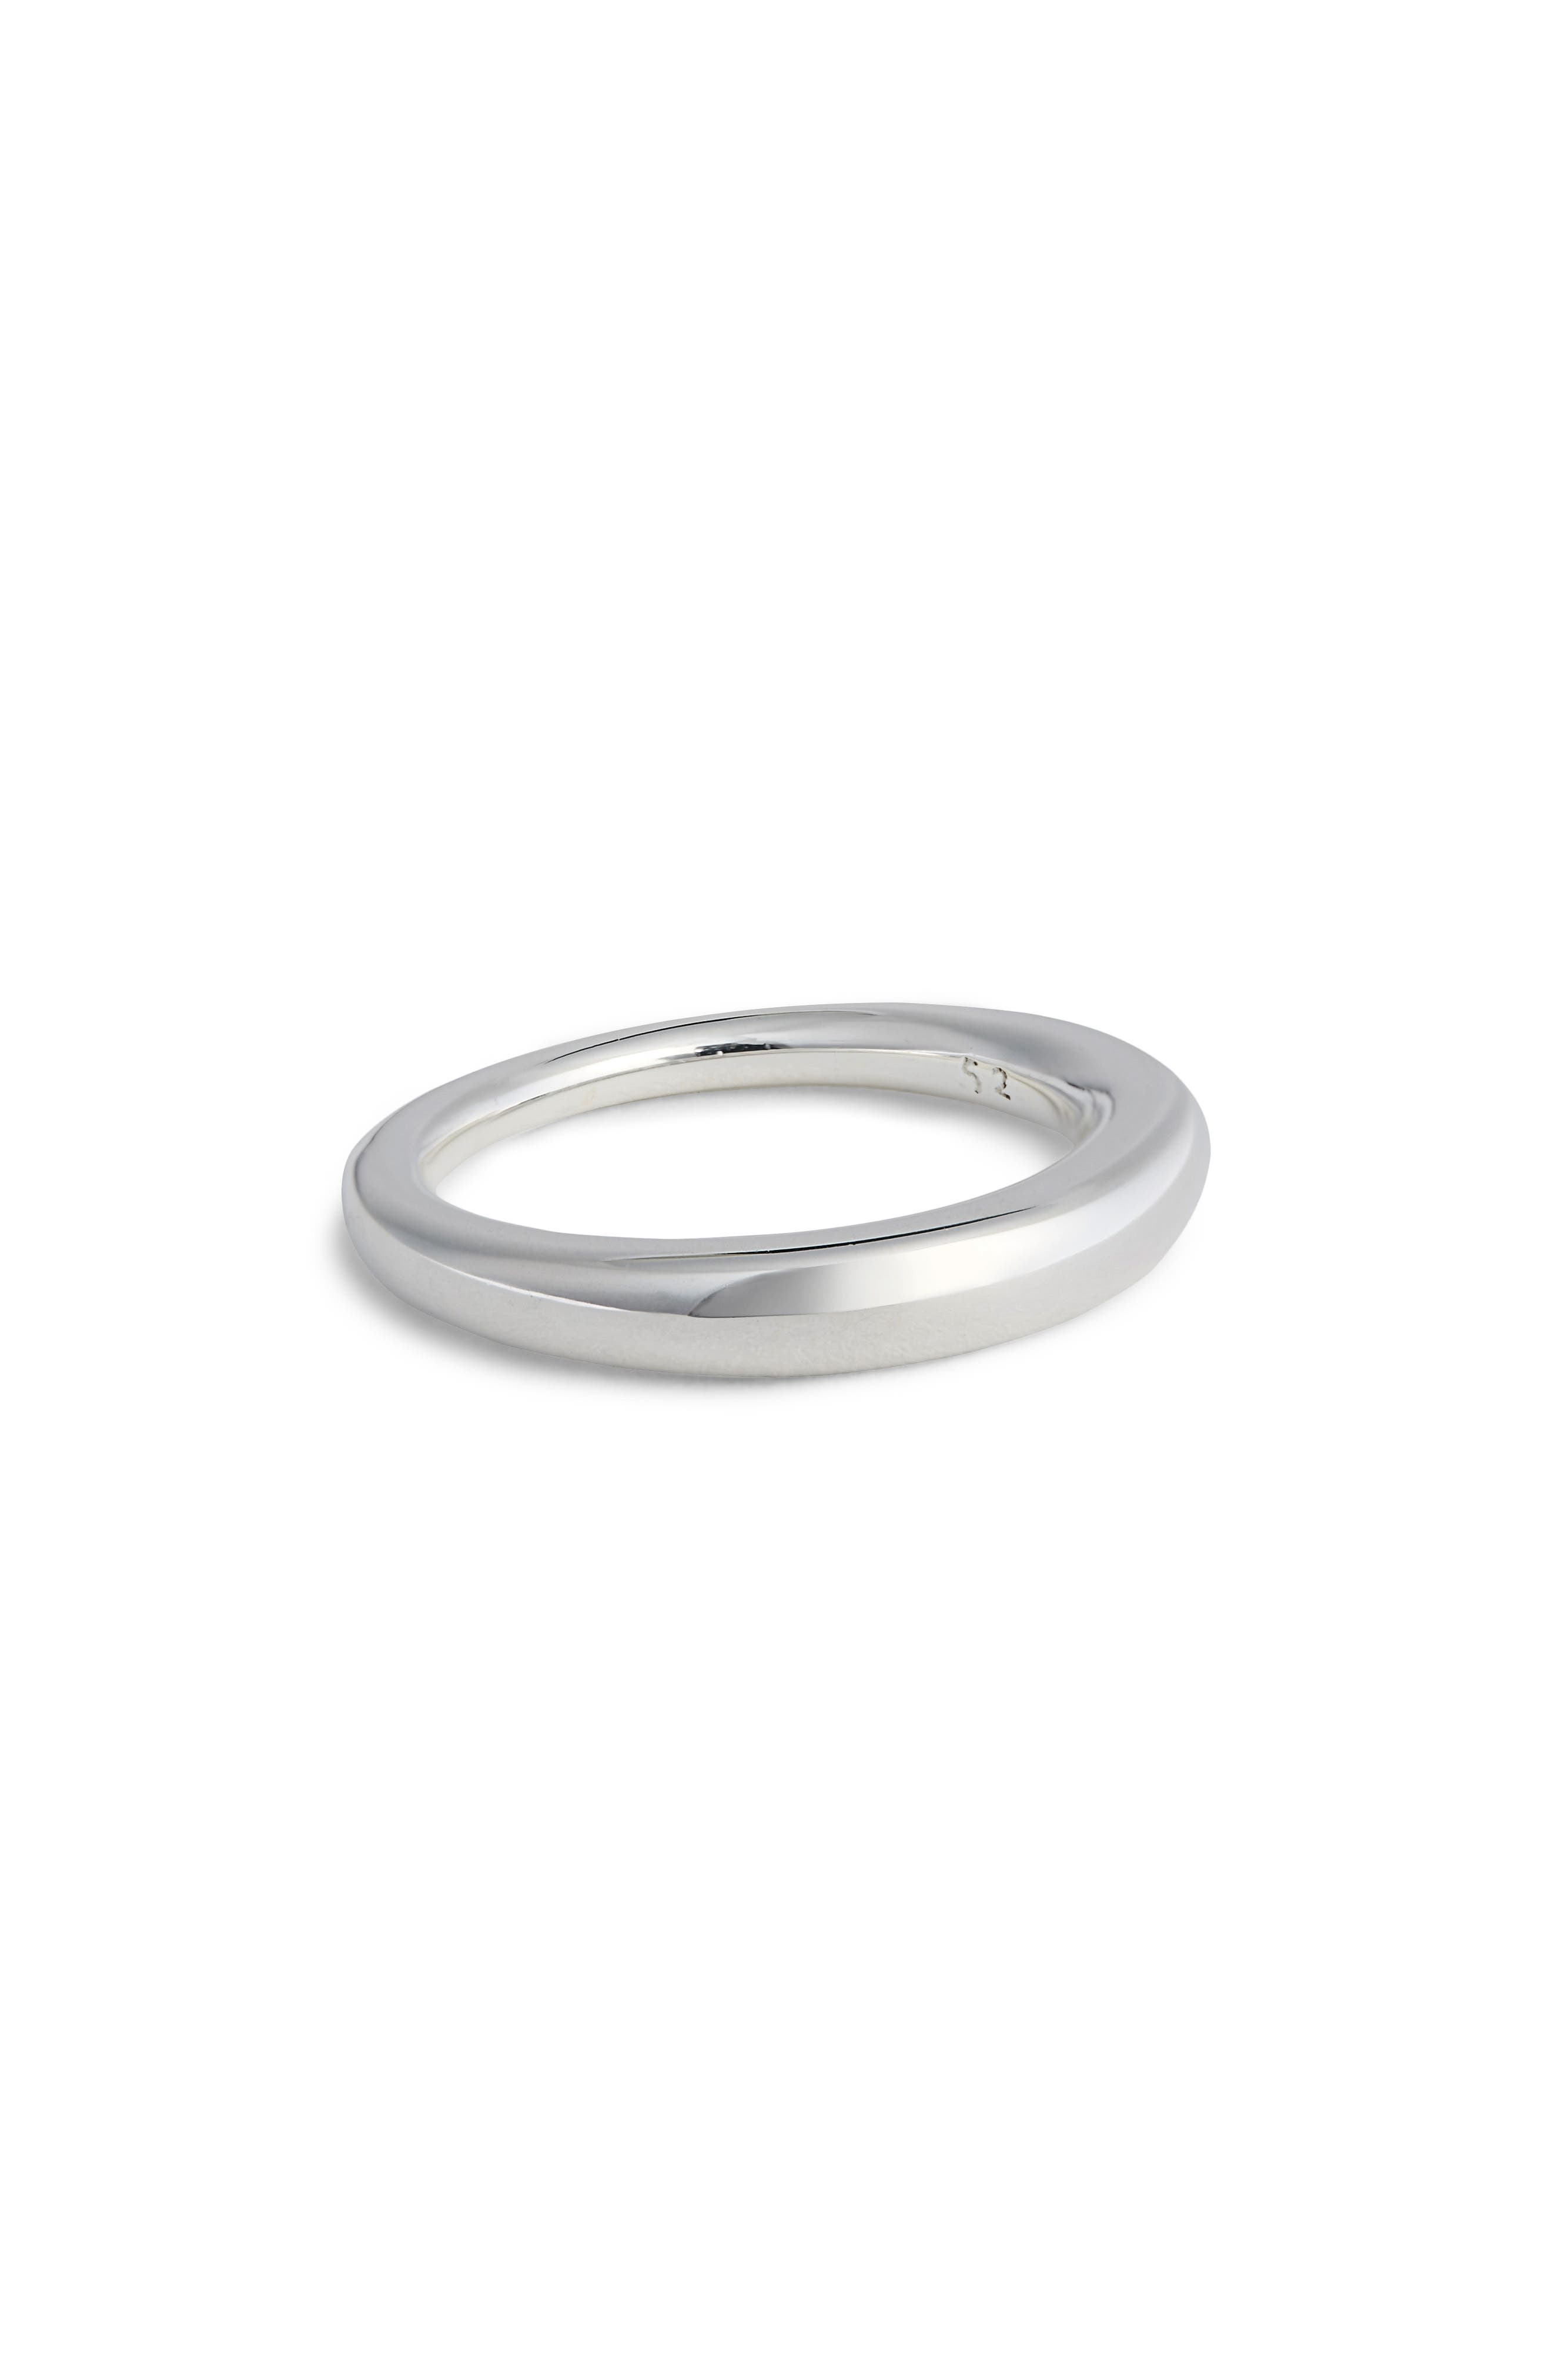 Alternate Image 1 Selected - All Blues Small Snake Polished Silver Ring